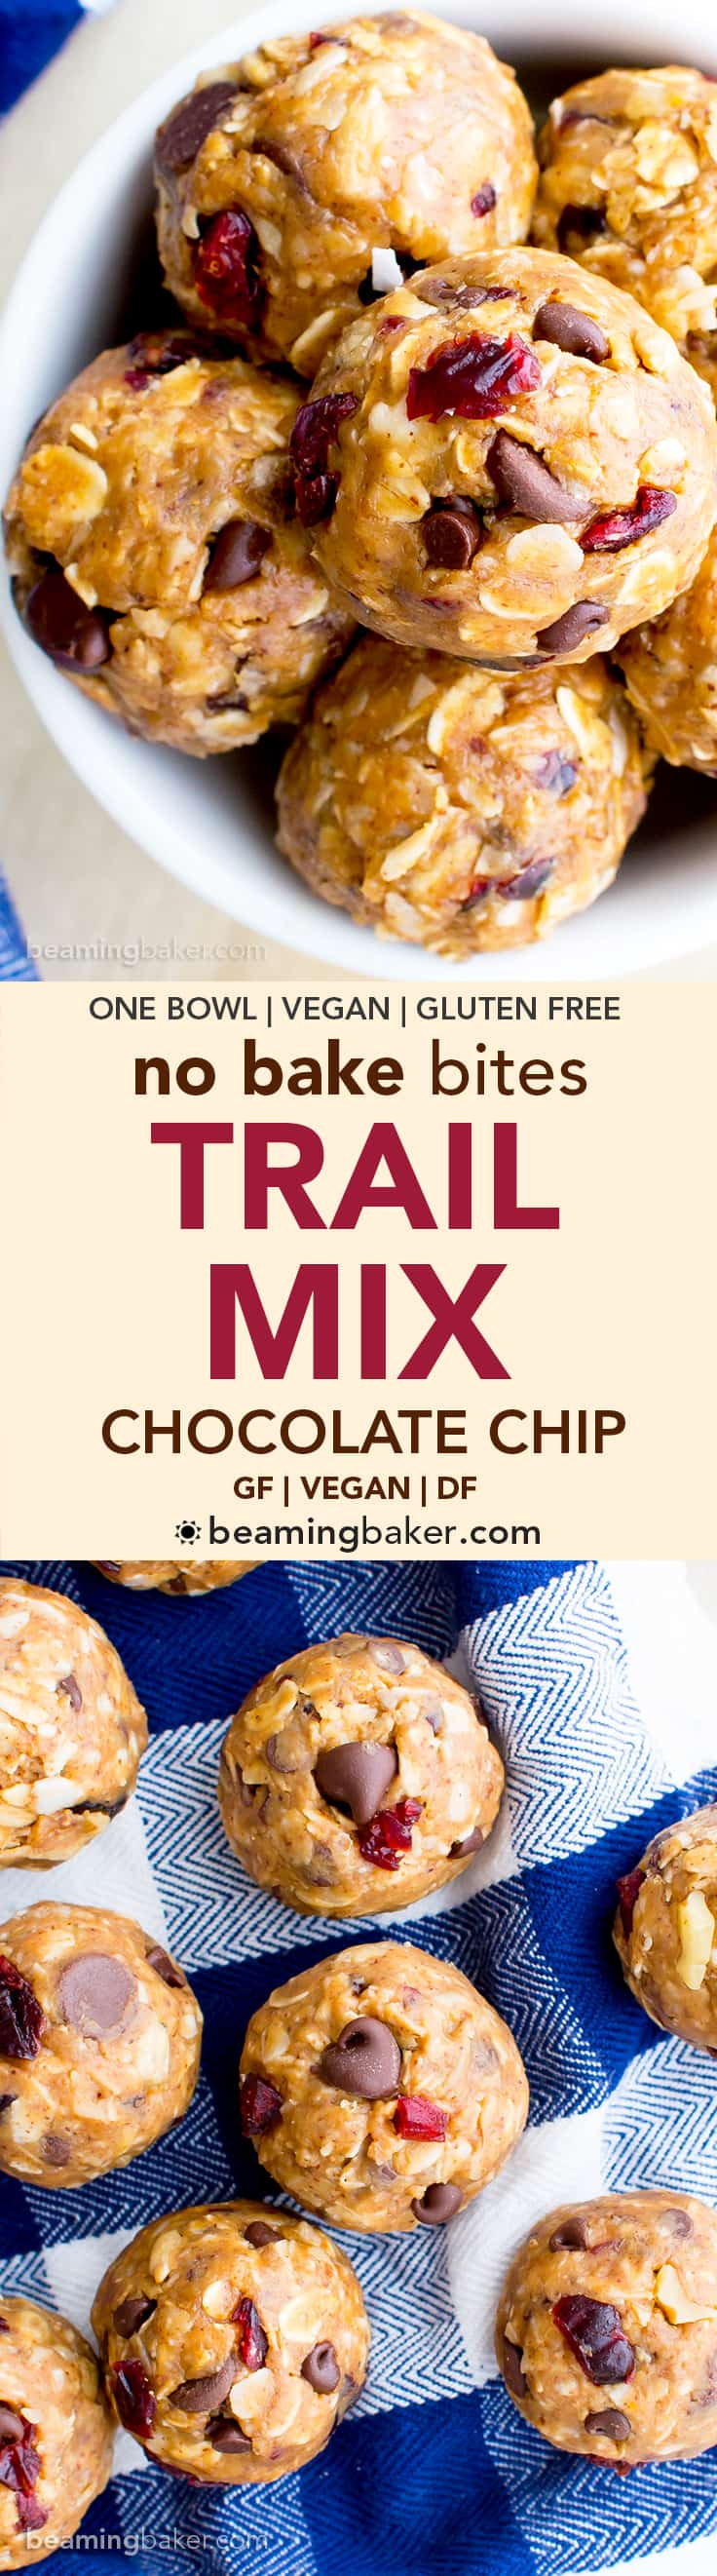 No Bake Chocolate Chip Trail Mix Energy Bites (V, GF, DF): a one bowl recipe for protein-packed energy bites bursting with whole ingredients. #Vegan #GlutenFree #DairyFree   BeamingBaker.com